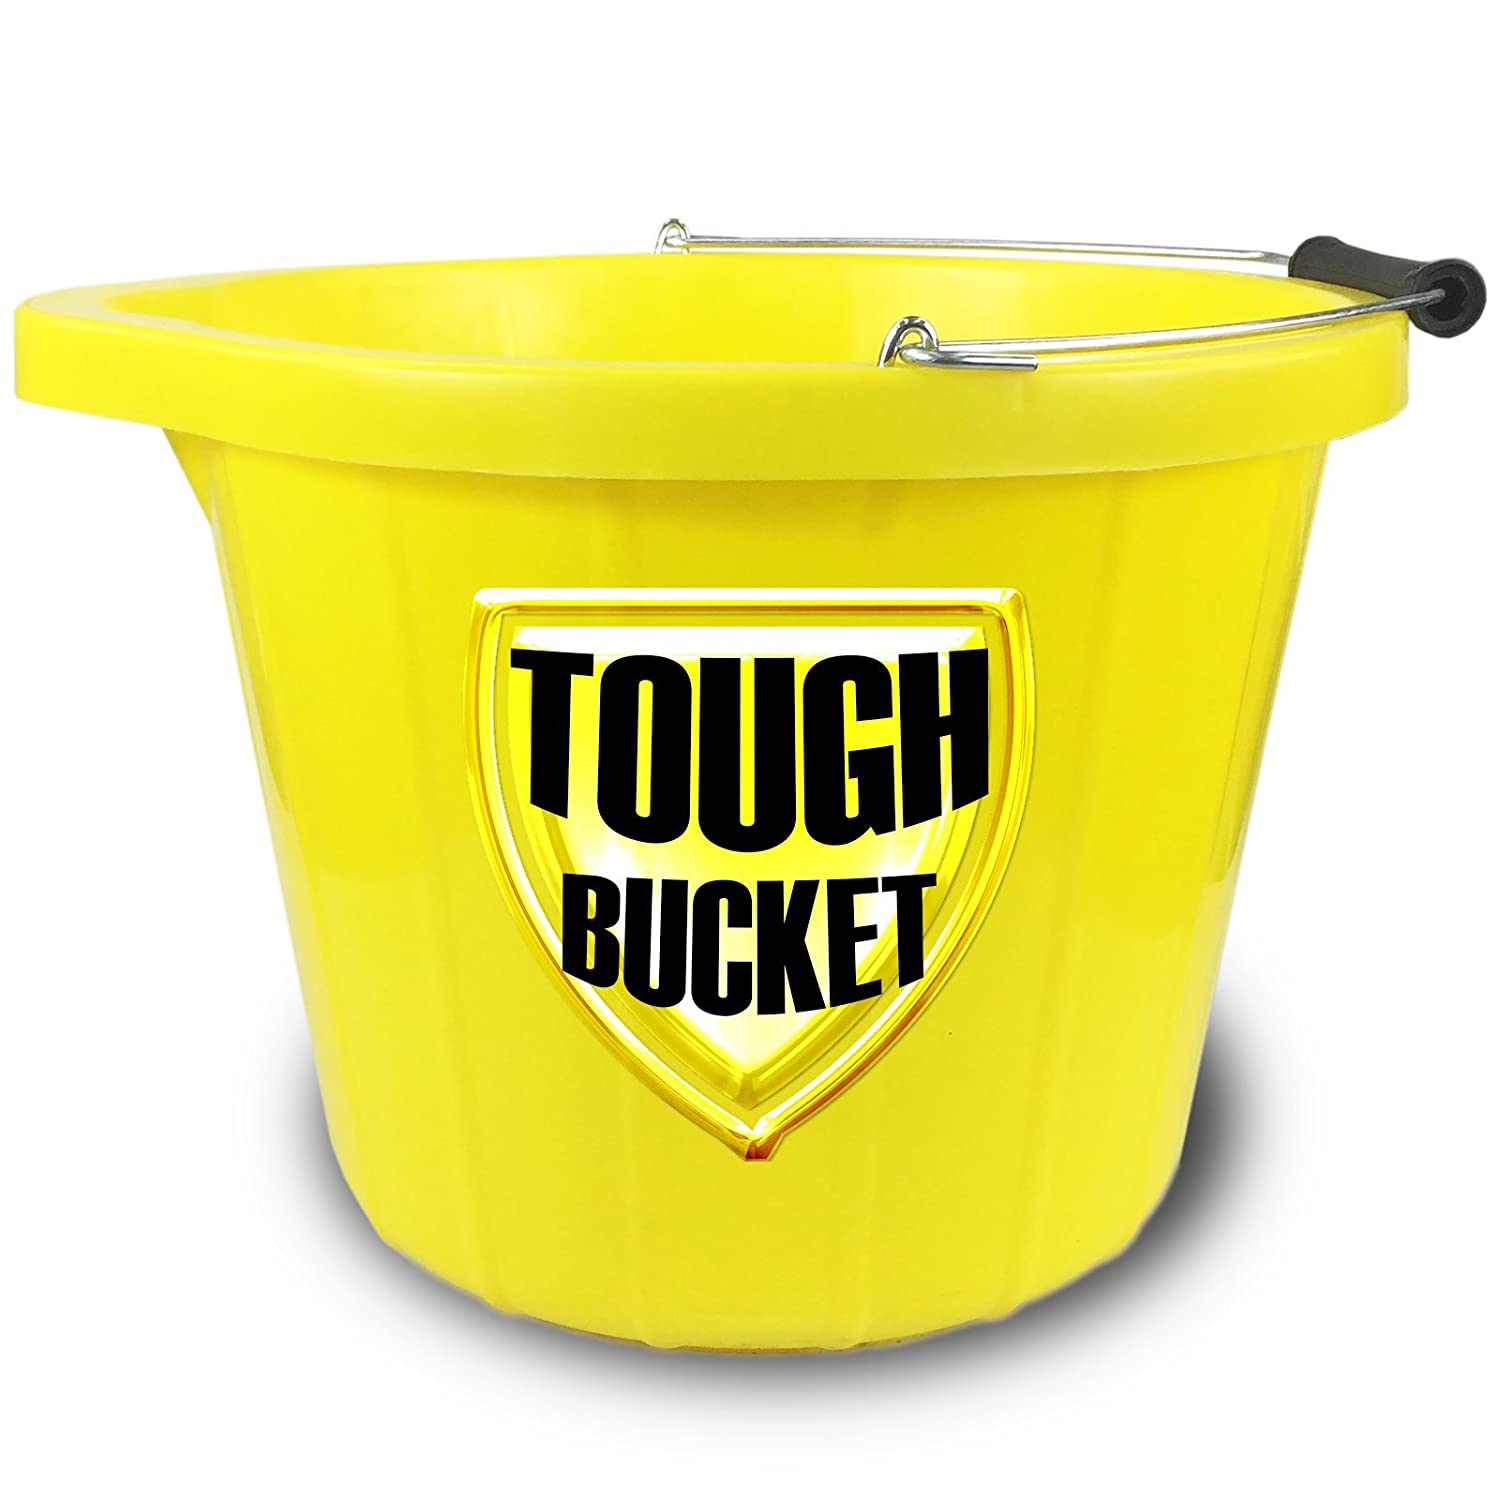 CrazyGadget Super Heavy Duty Invincible Yellow Builders Bucket Plastic 3 Gallon 15 Litre 15L Strong Water Mixing Storage (5 Years Guarantee) (10)